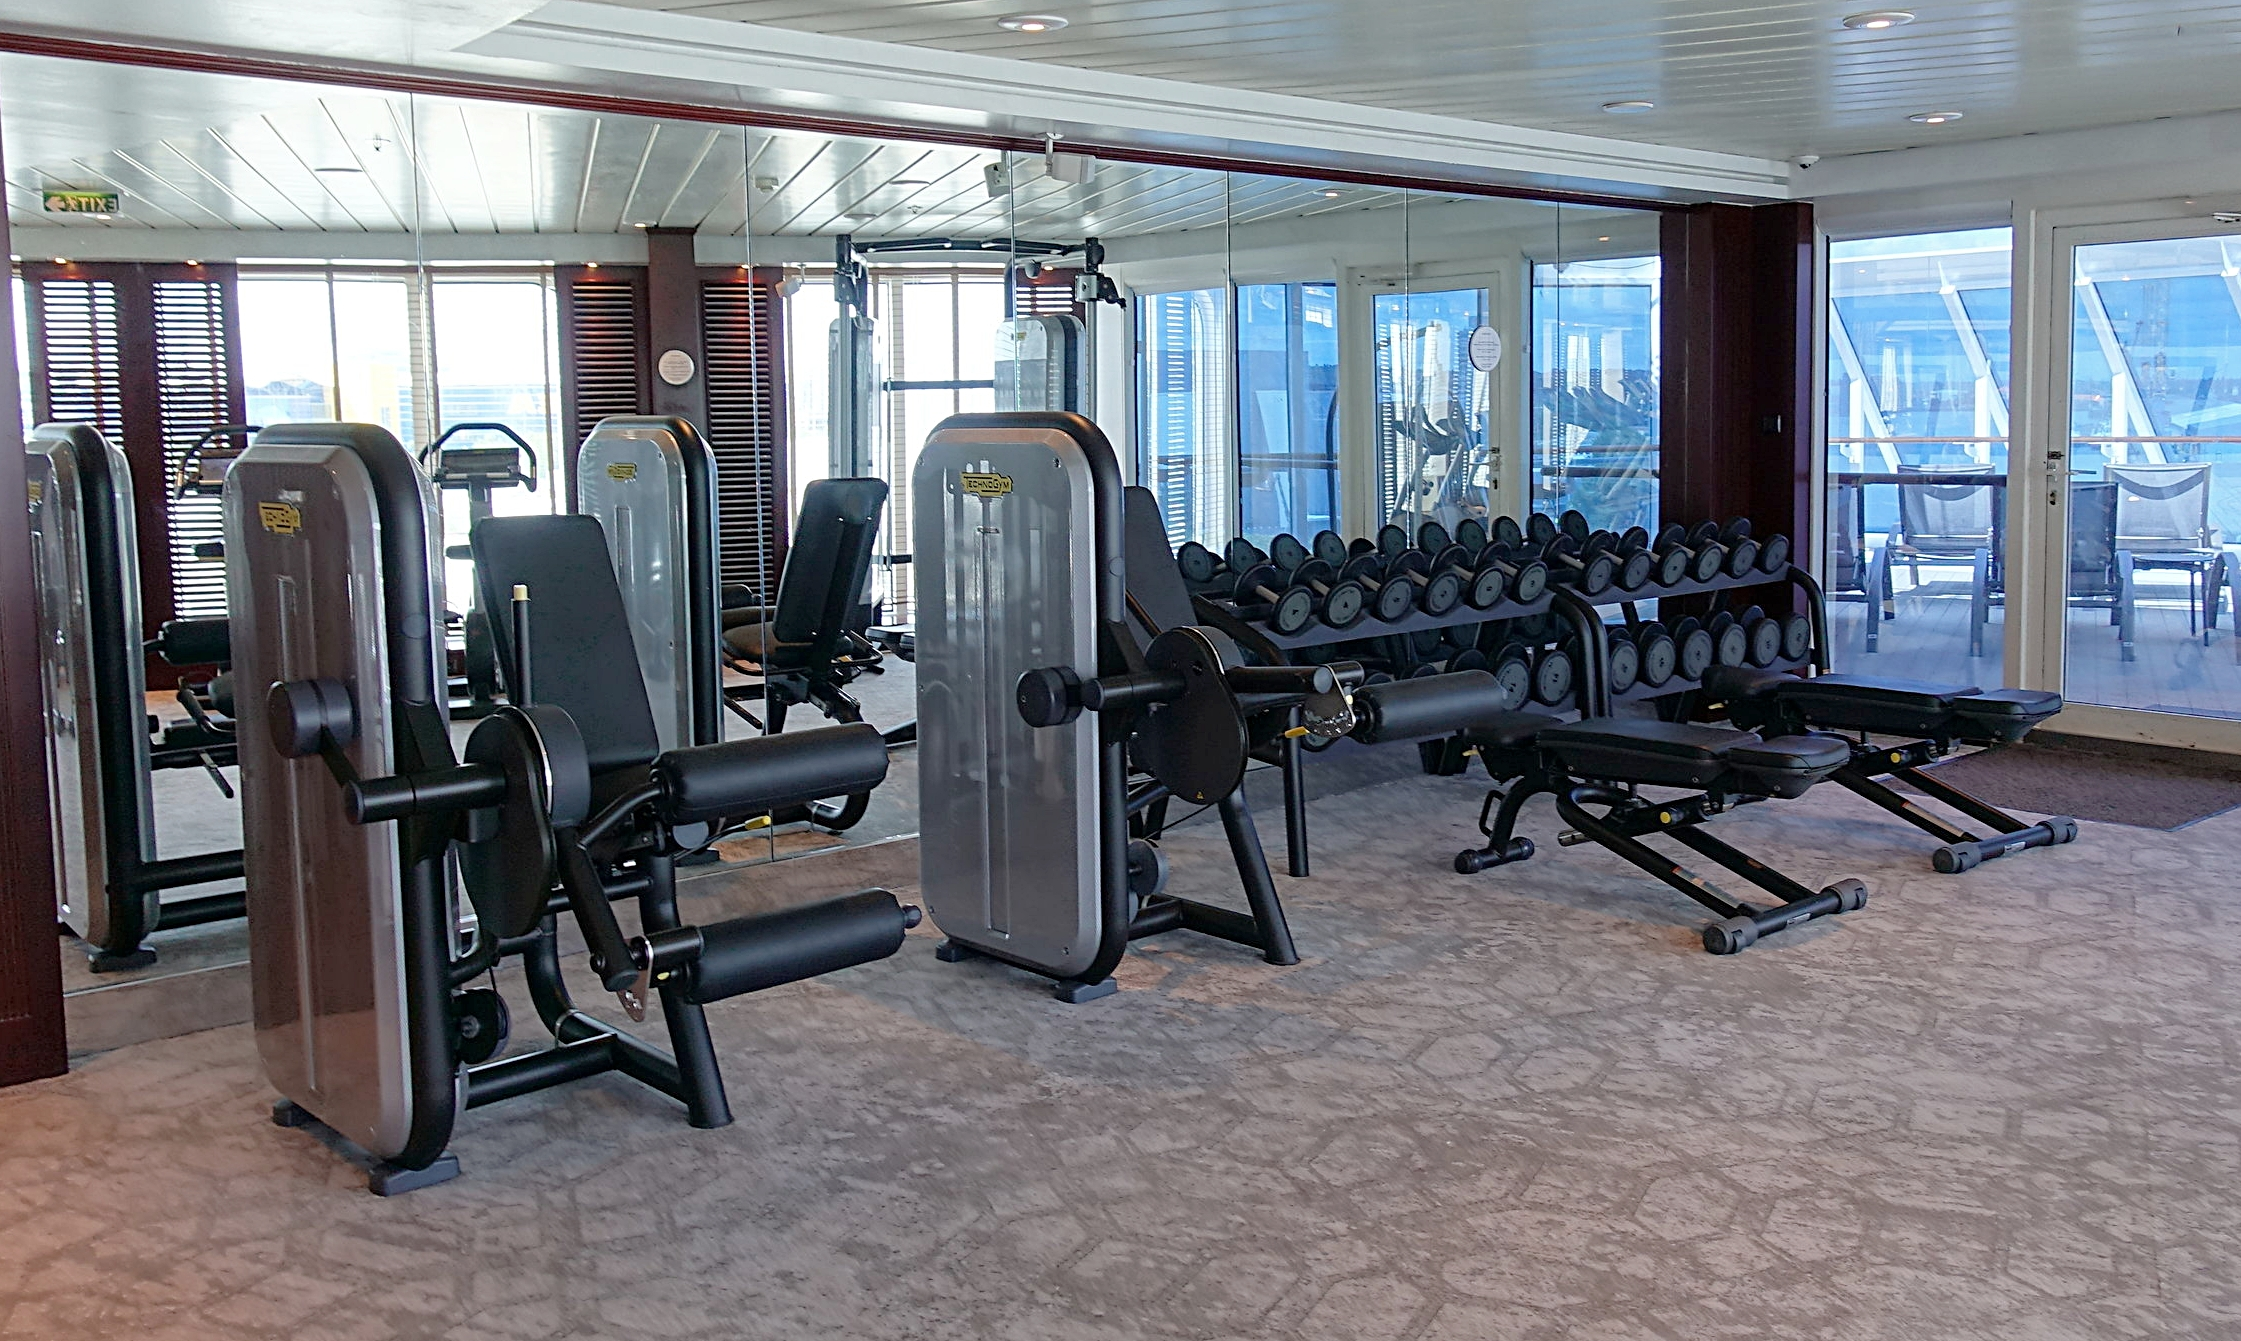 The weights area in the gym.